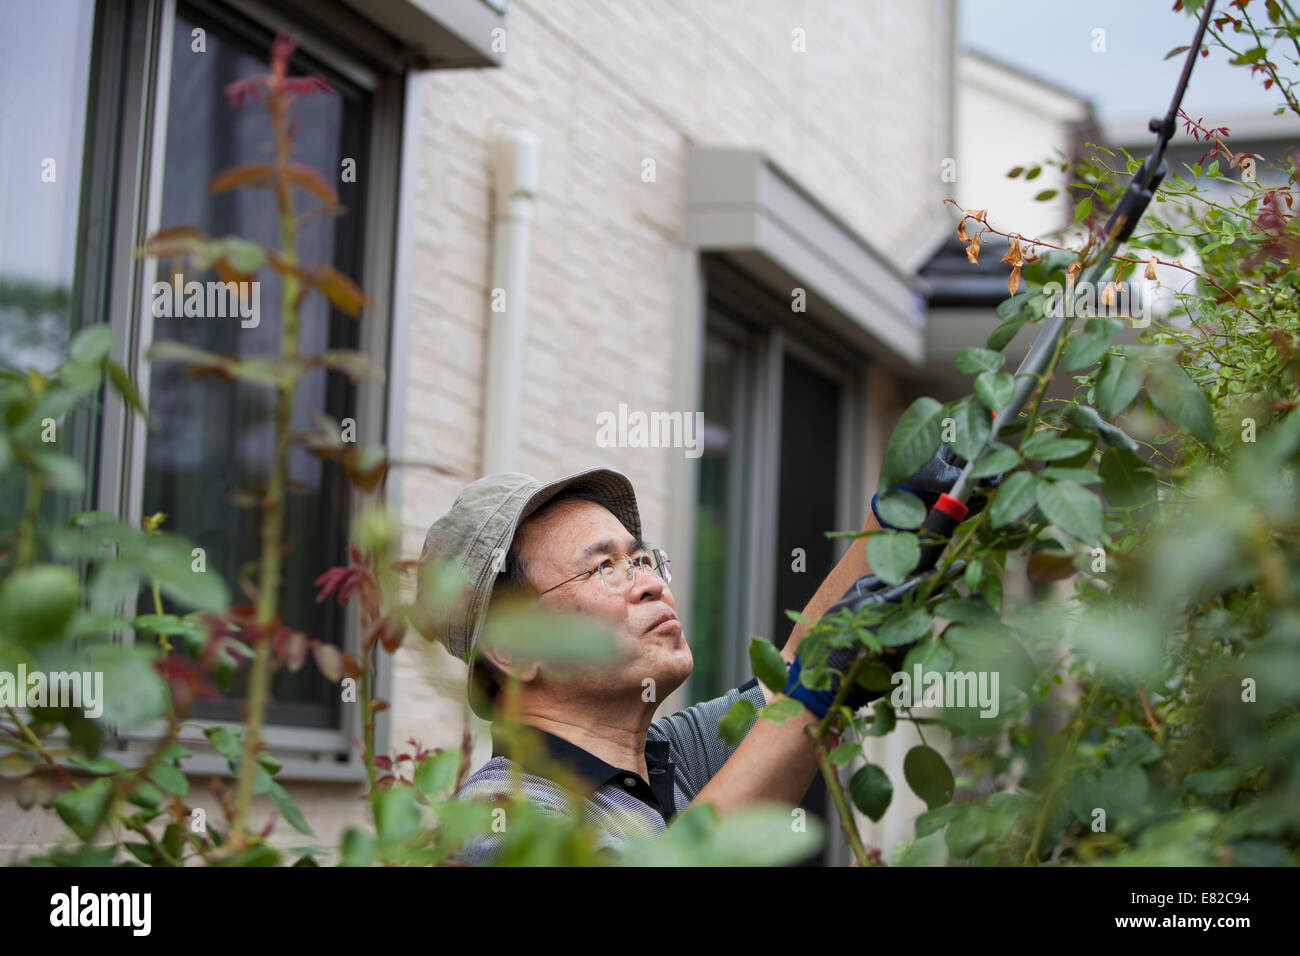 A man working in his garden. - Stock Image